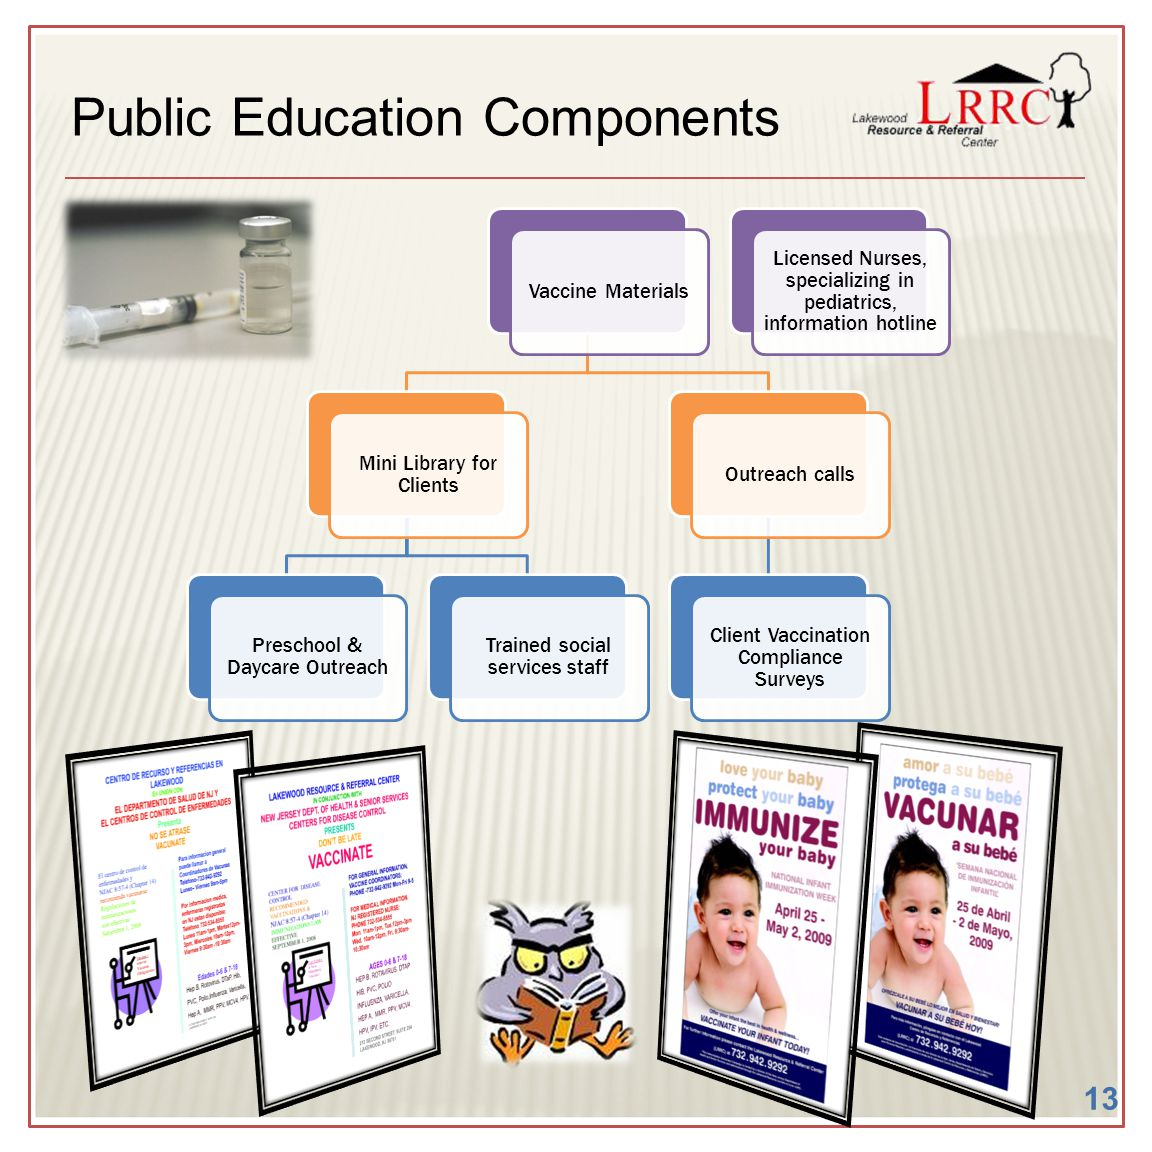 Public Education Components Vaccine Materials Mini Library for Clients Preschool & Daycare Outreach Trained social services staff Outreach calls Clien